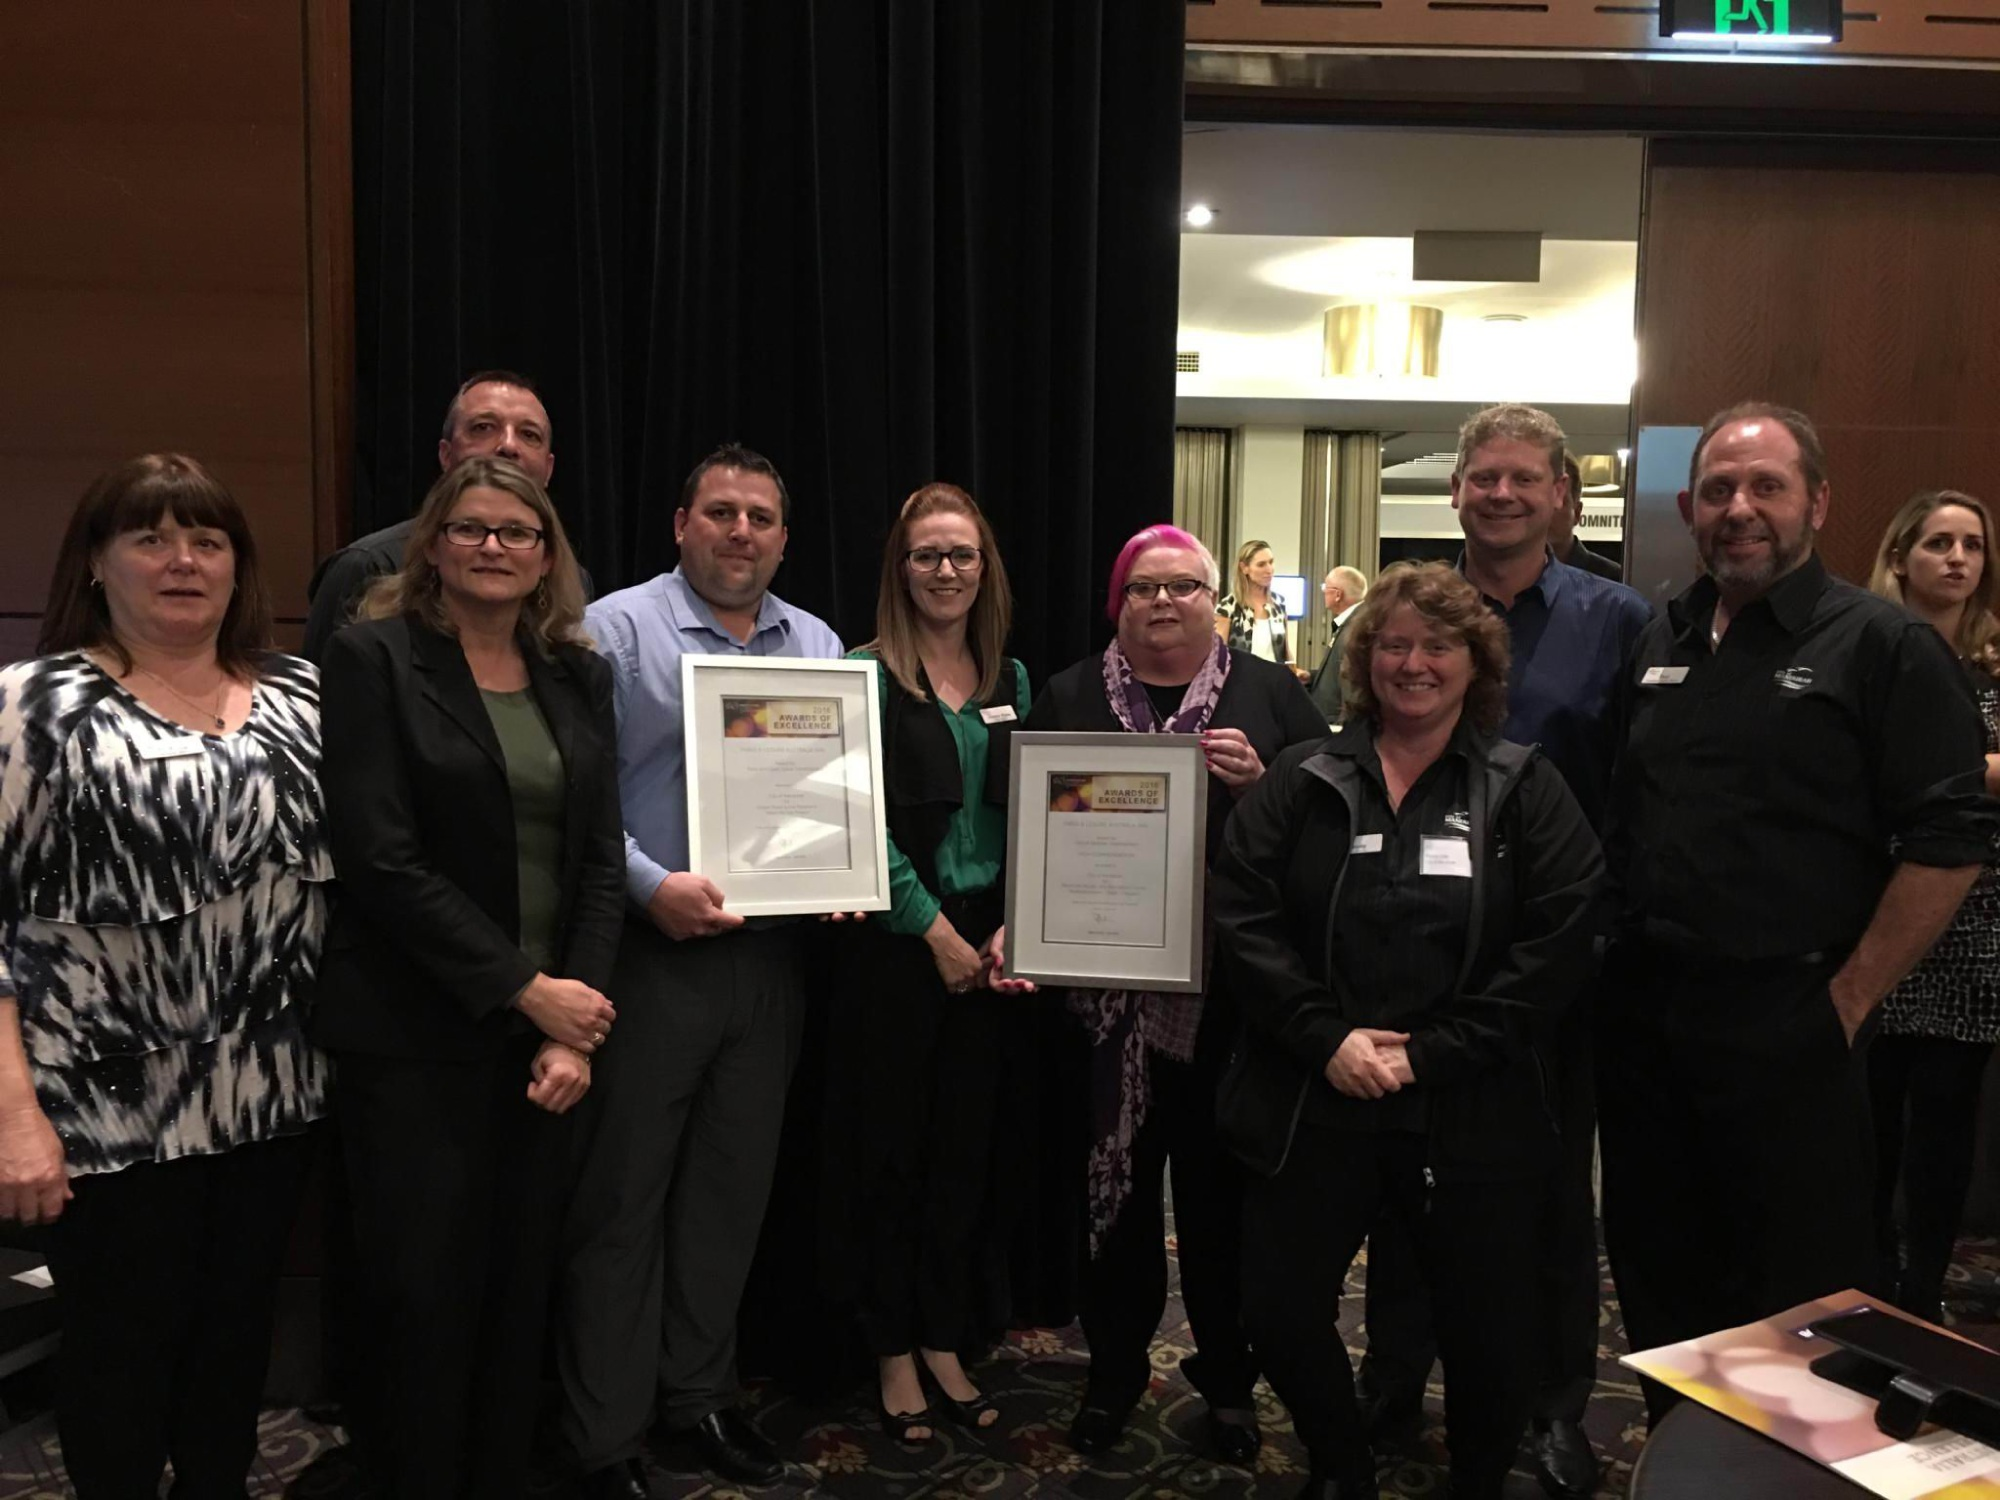 City of Mandurah Recreation Centres and Services staff Jo-Anne Prout, Wendy Murphy, Adrian Timms, Dale Christy,Doanne Dunn, Lesley Wilkinson, Wendy Cole, Craig Johnson and Paul Miller at the Parks and Leisure Awards.